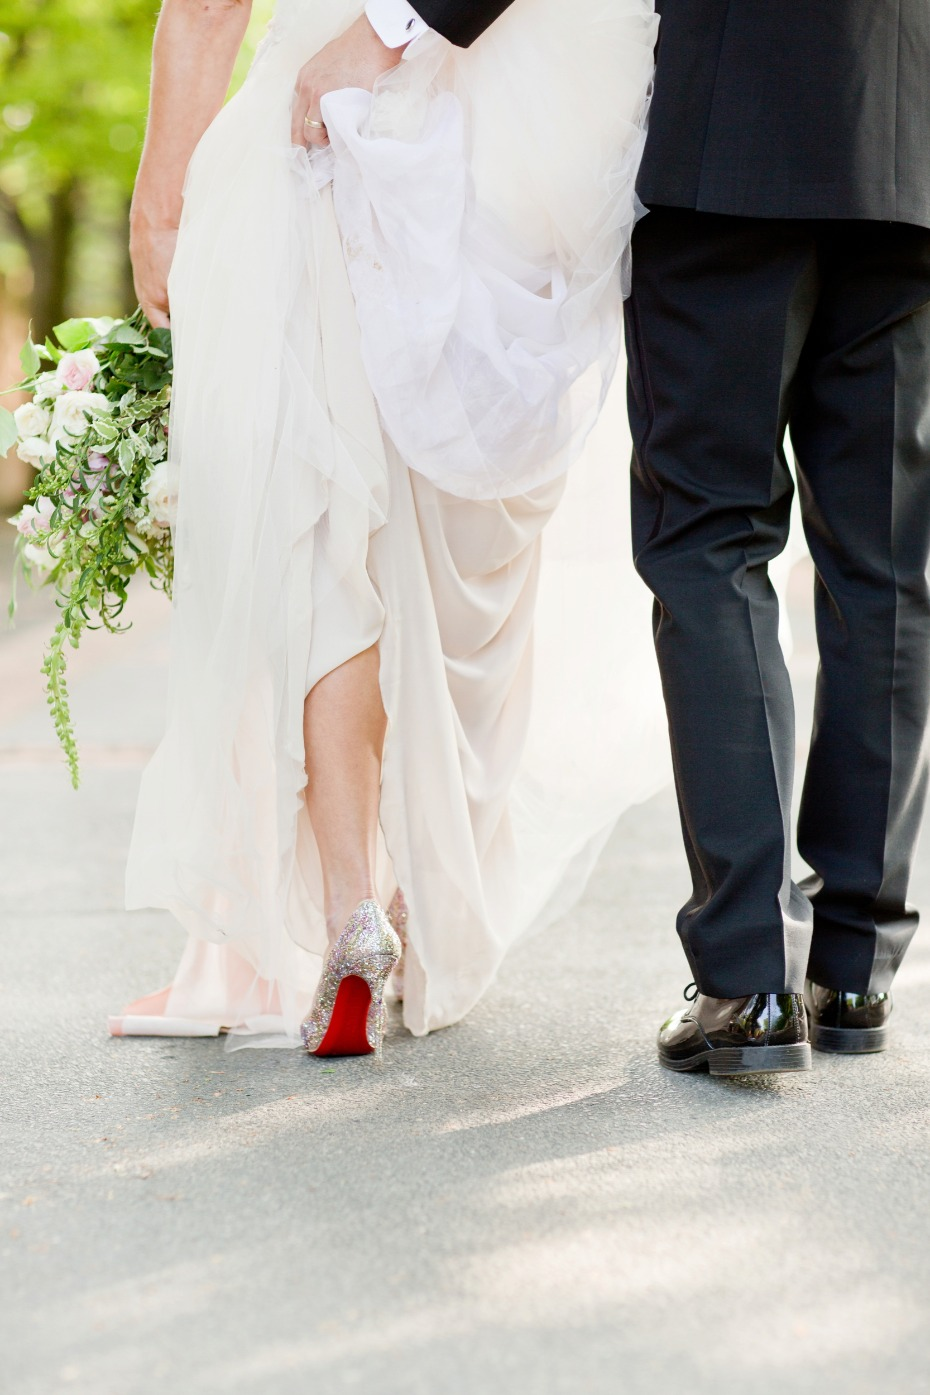 Louboutin heels for the bride